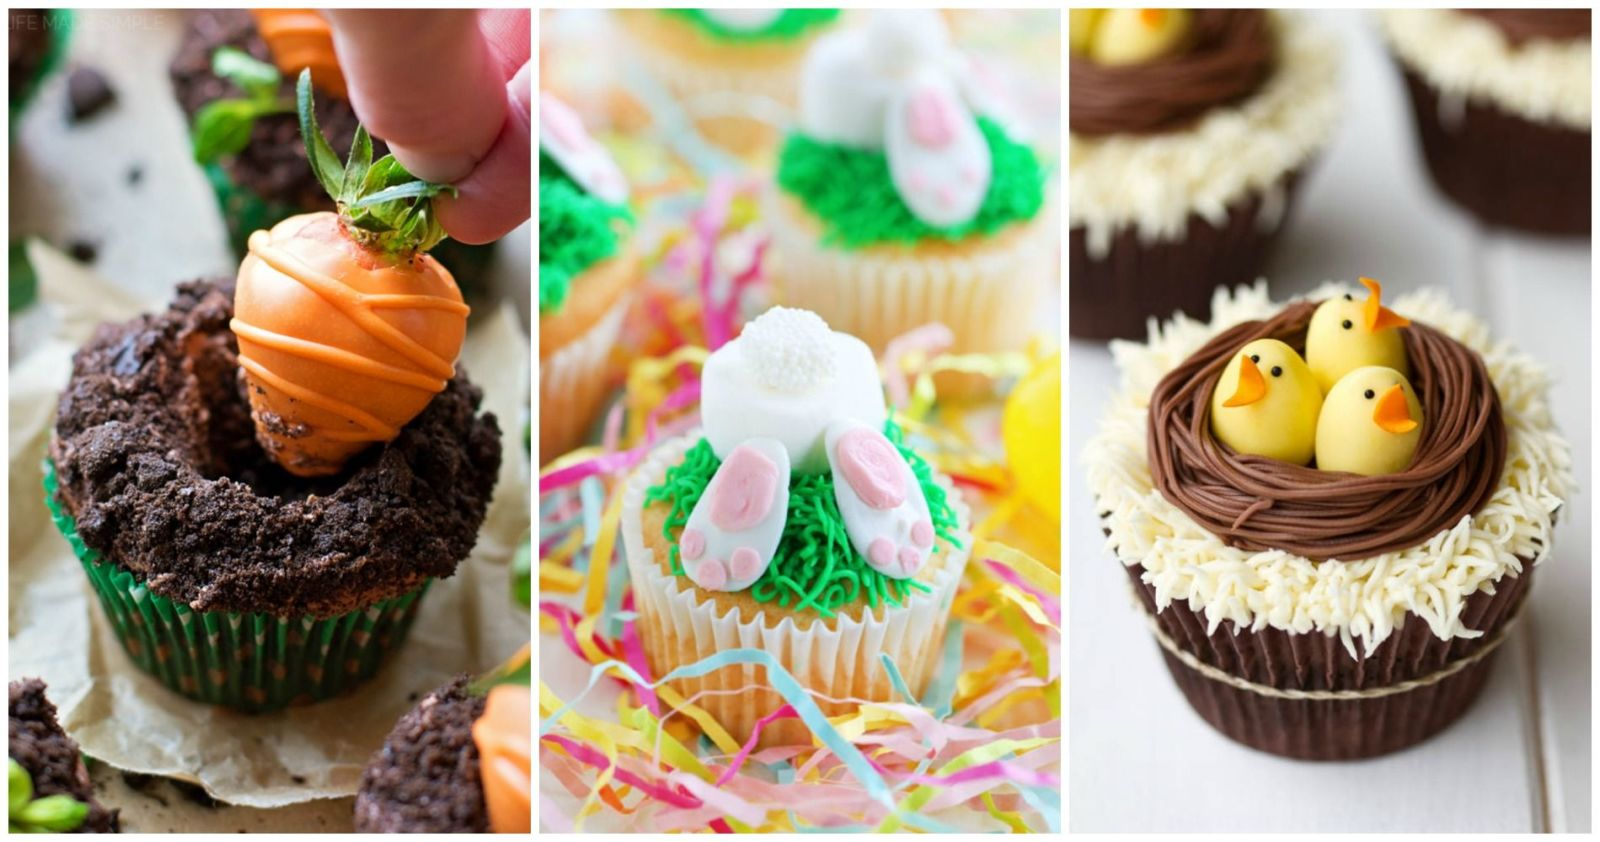 12 Cute Easter Cupcake Ideas - Decorating & Recipes for Easter ...